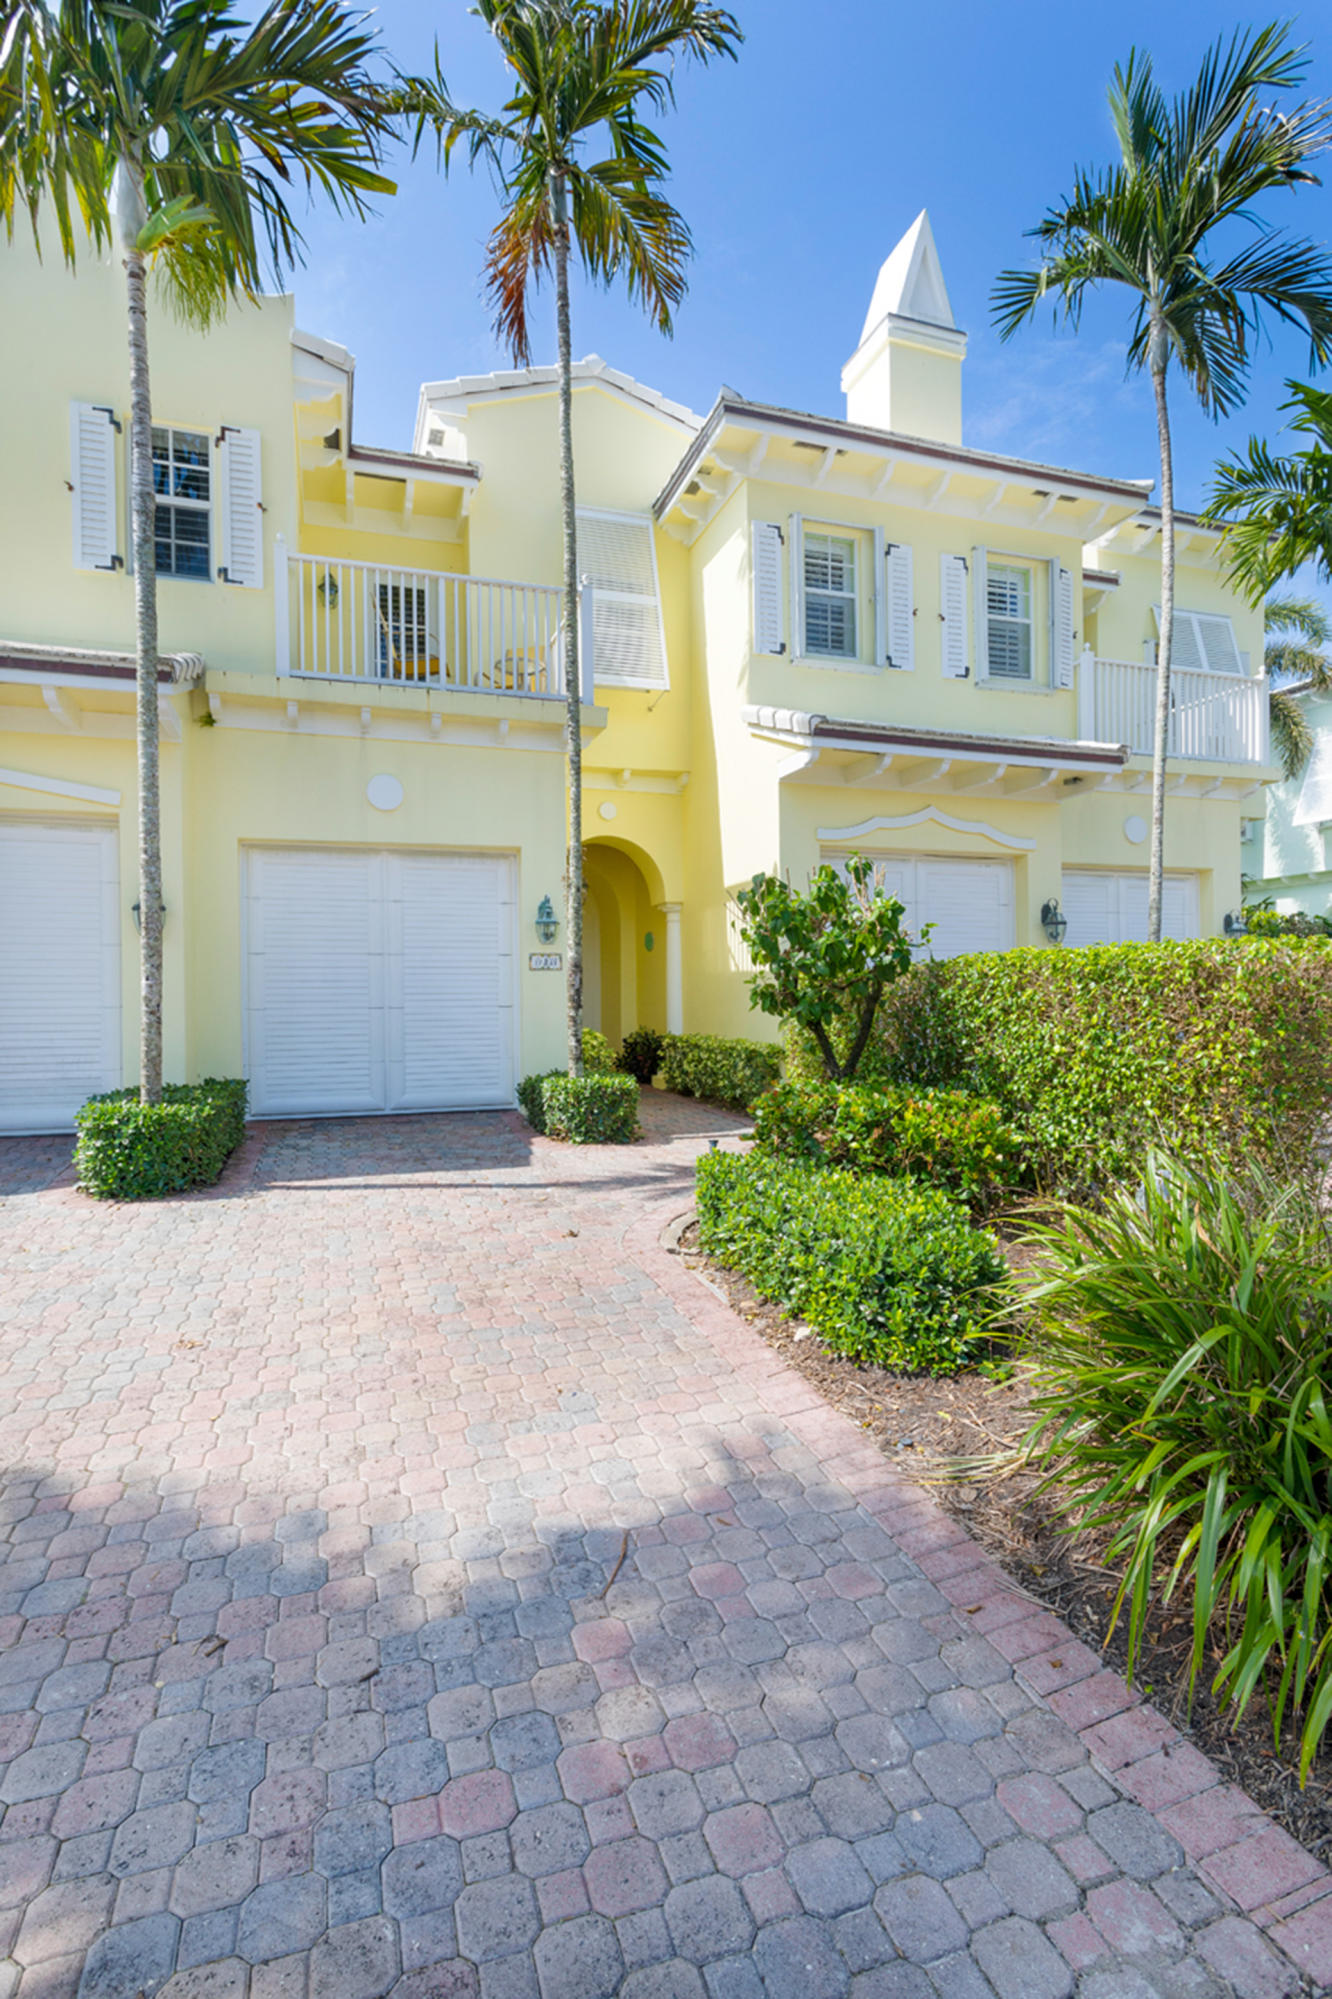 790 Andrews Avenue, Delray Beach, Florida 33483, 3 Bedrooms Bedrooms, ,2.1 BathroomsBathrooms,Townhouse,For Sale,Andrews,RX-10591892